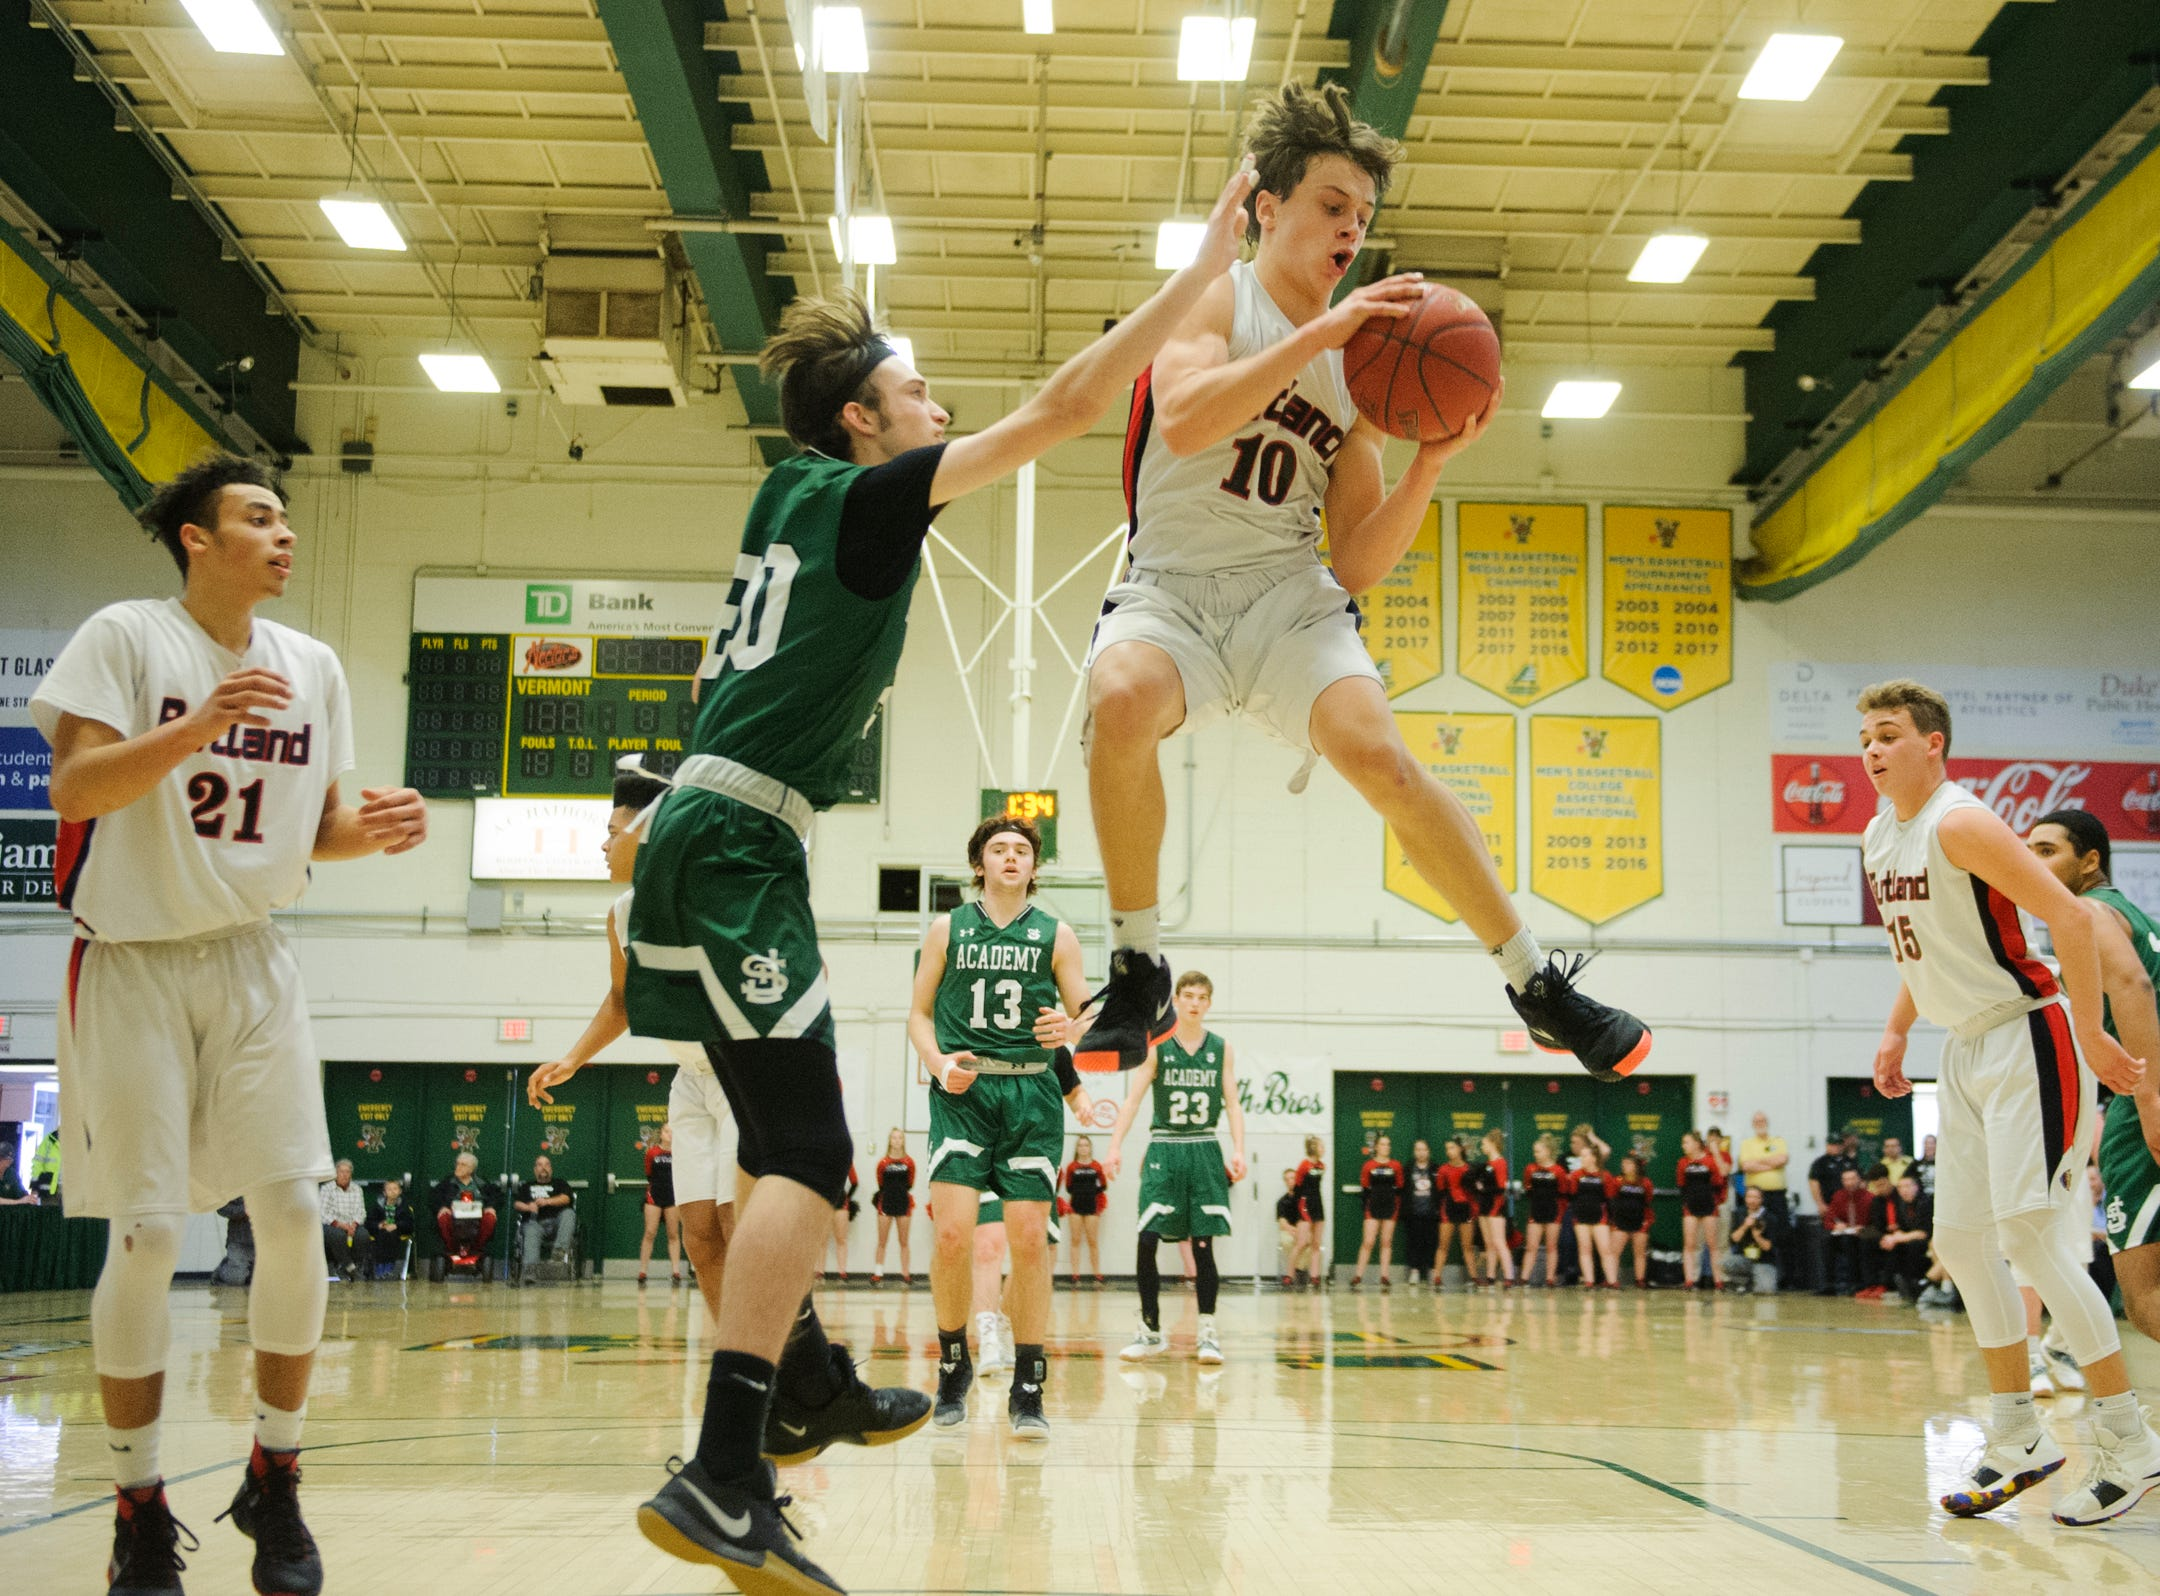 Rutland's Evan Pocket (10) leaps to grab the rebound during the DI boys basketball championship game between the St. Johnsbury Hilltoppers and the Rutland Raiders at Patrick Gym on Sunday afternoon March 17, 2019 in Burlington, Vermont.